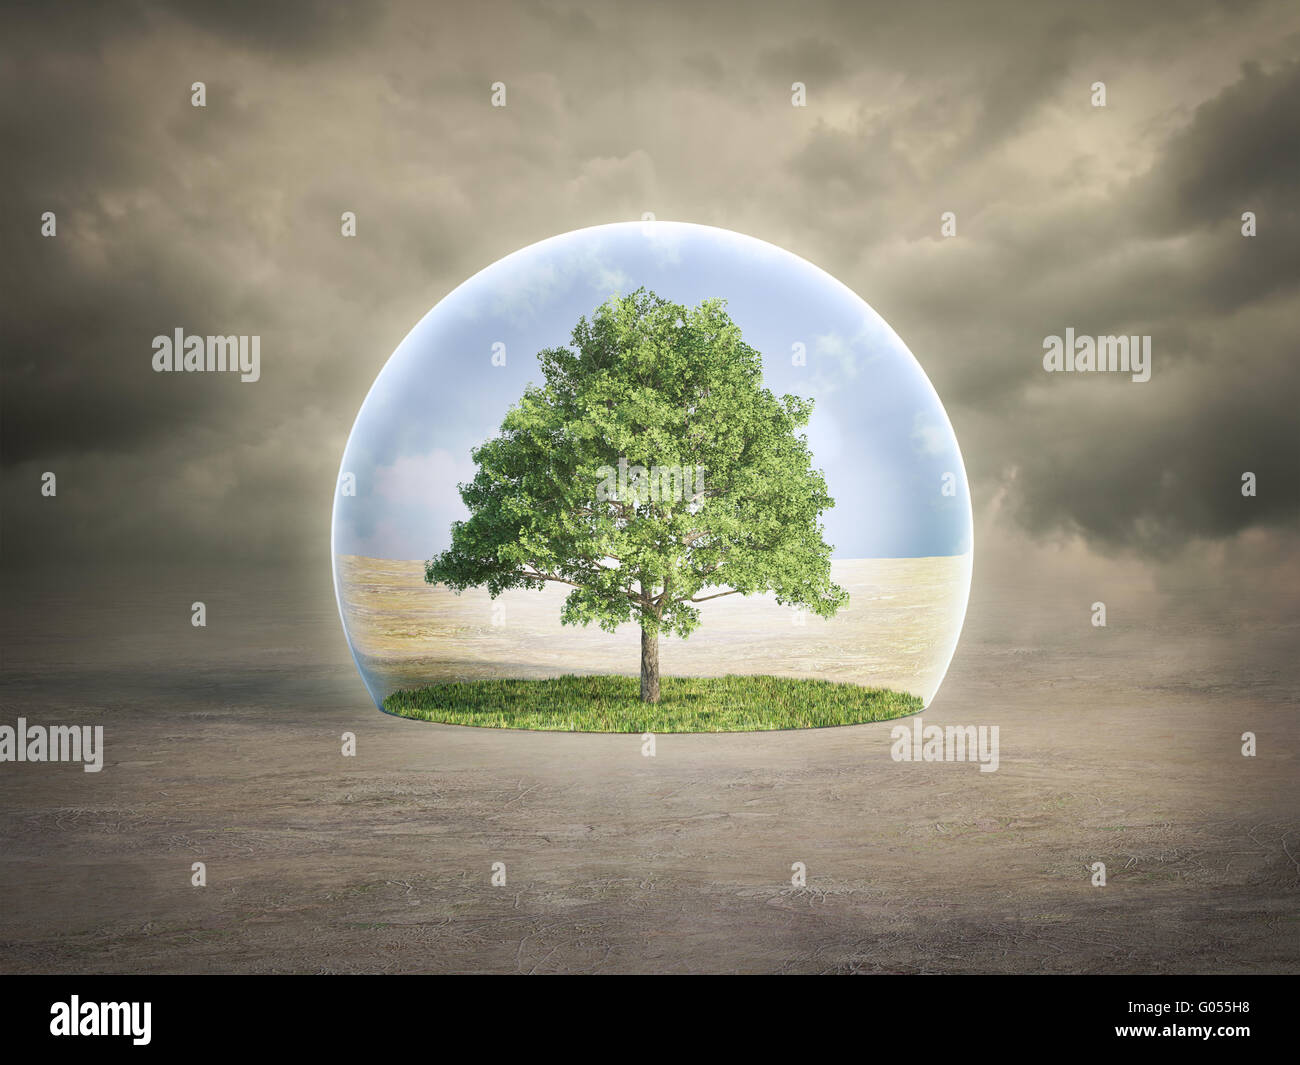 Environmental protection concept - tree in a bubble - Stock Image